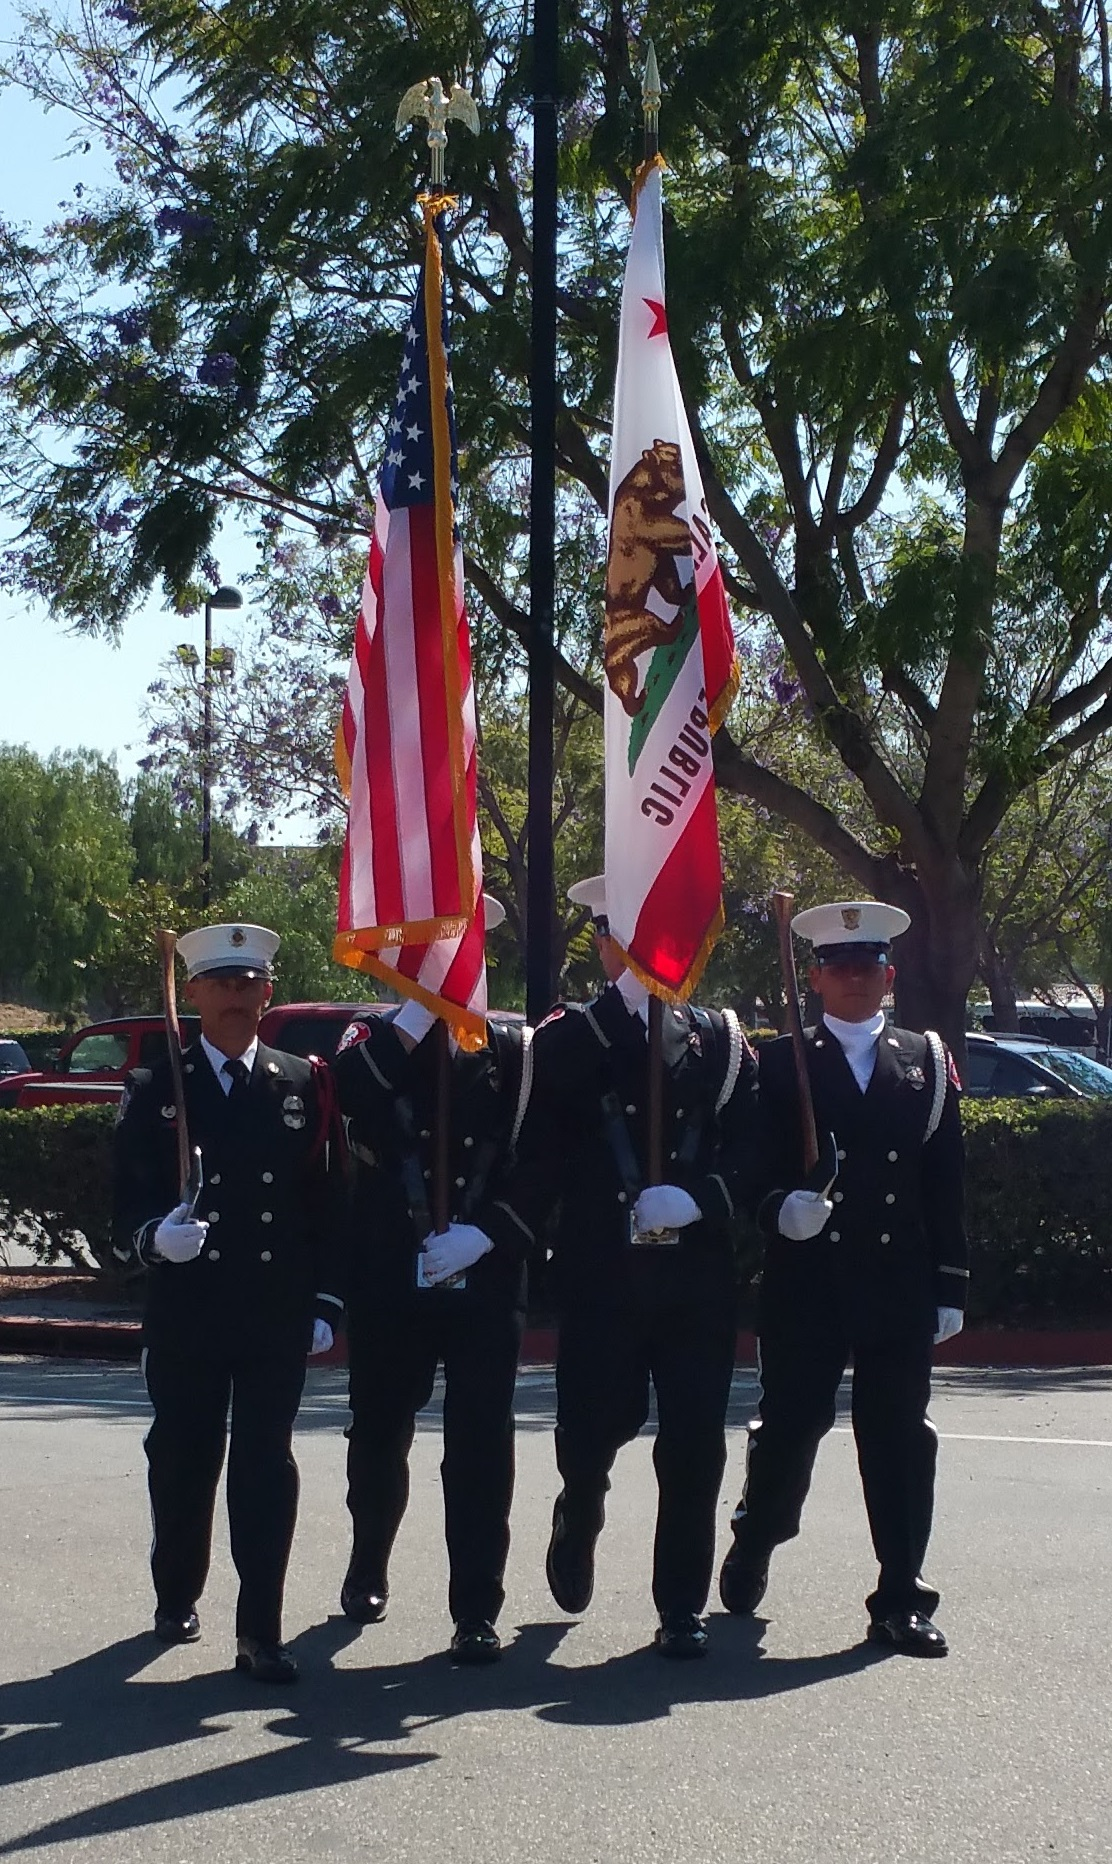 Firefighter Color Guard Axes at Right Shoulder